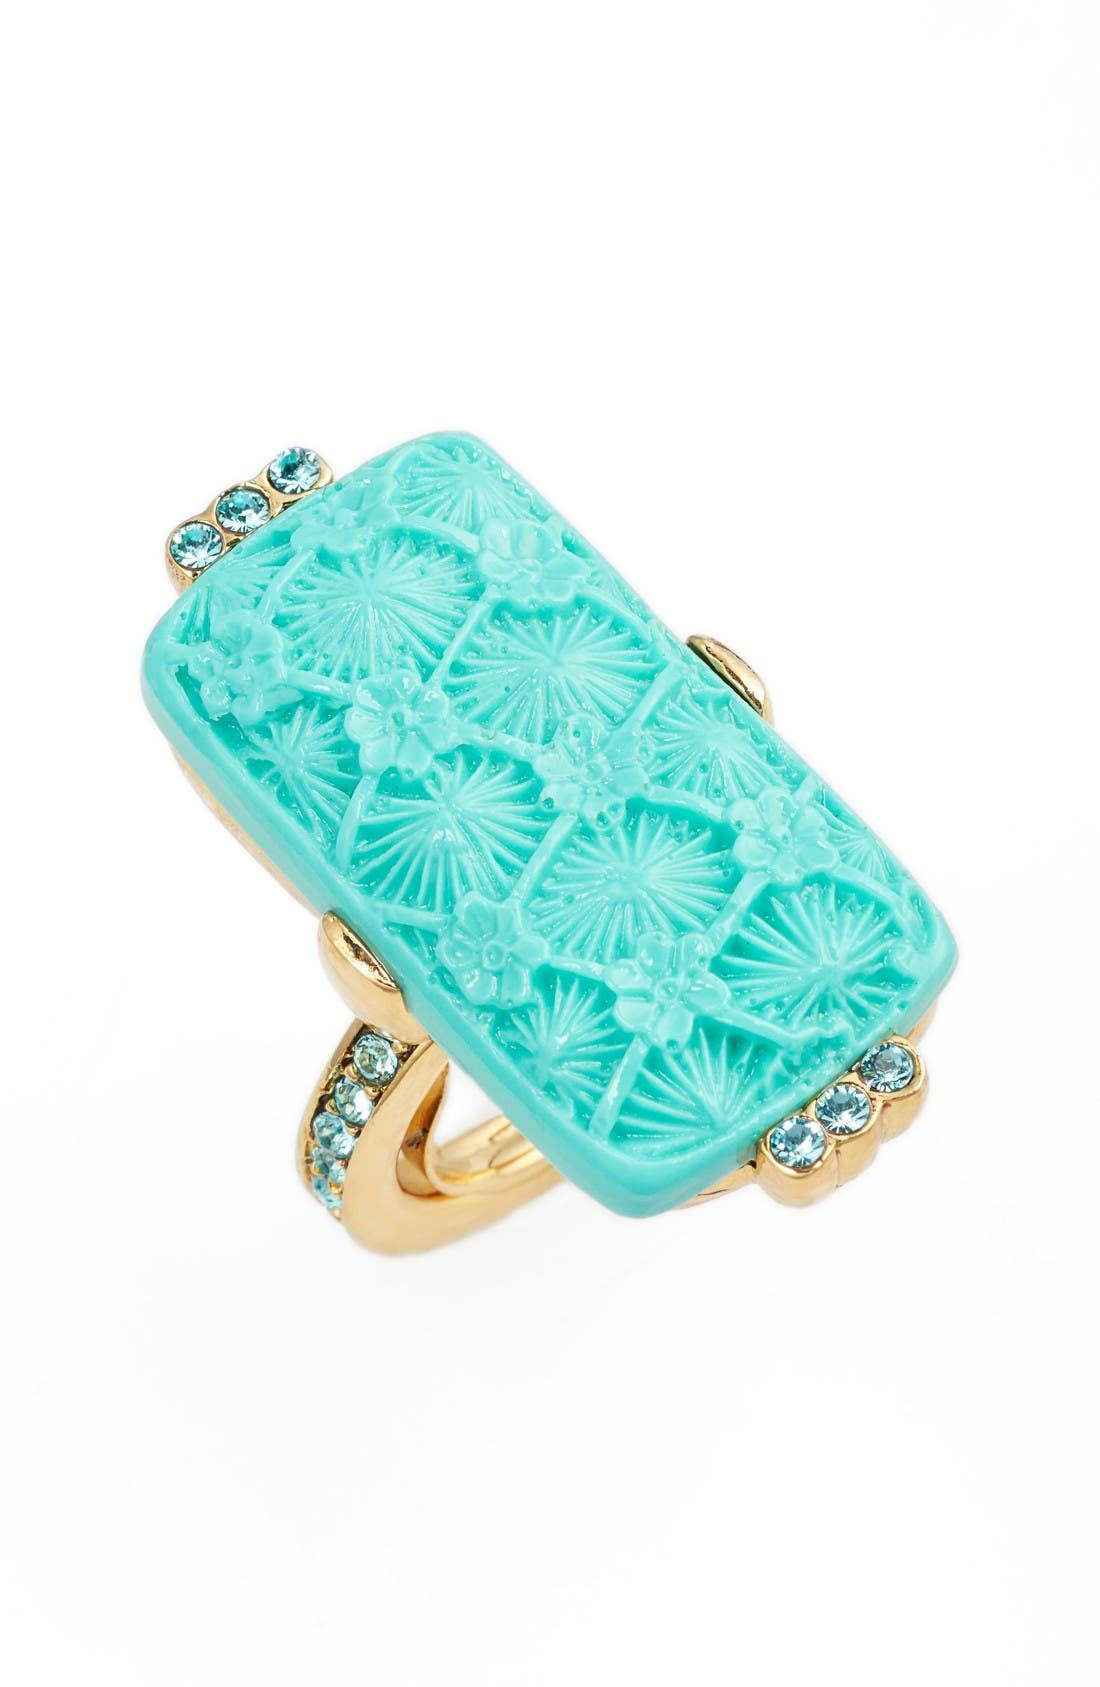 Alternate Image 1 Selected - Oscar de la Renta Carved Resin & Swarovski Crystal Ring